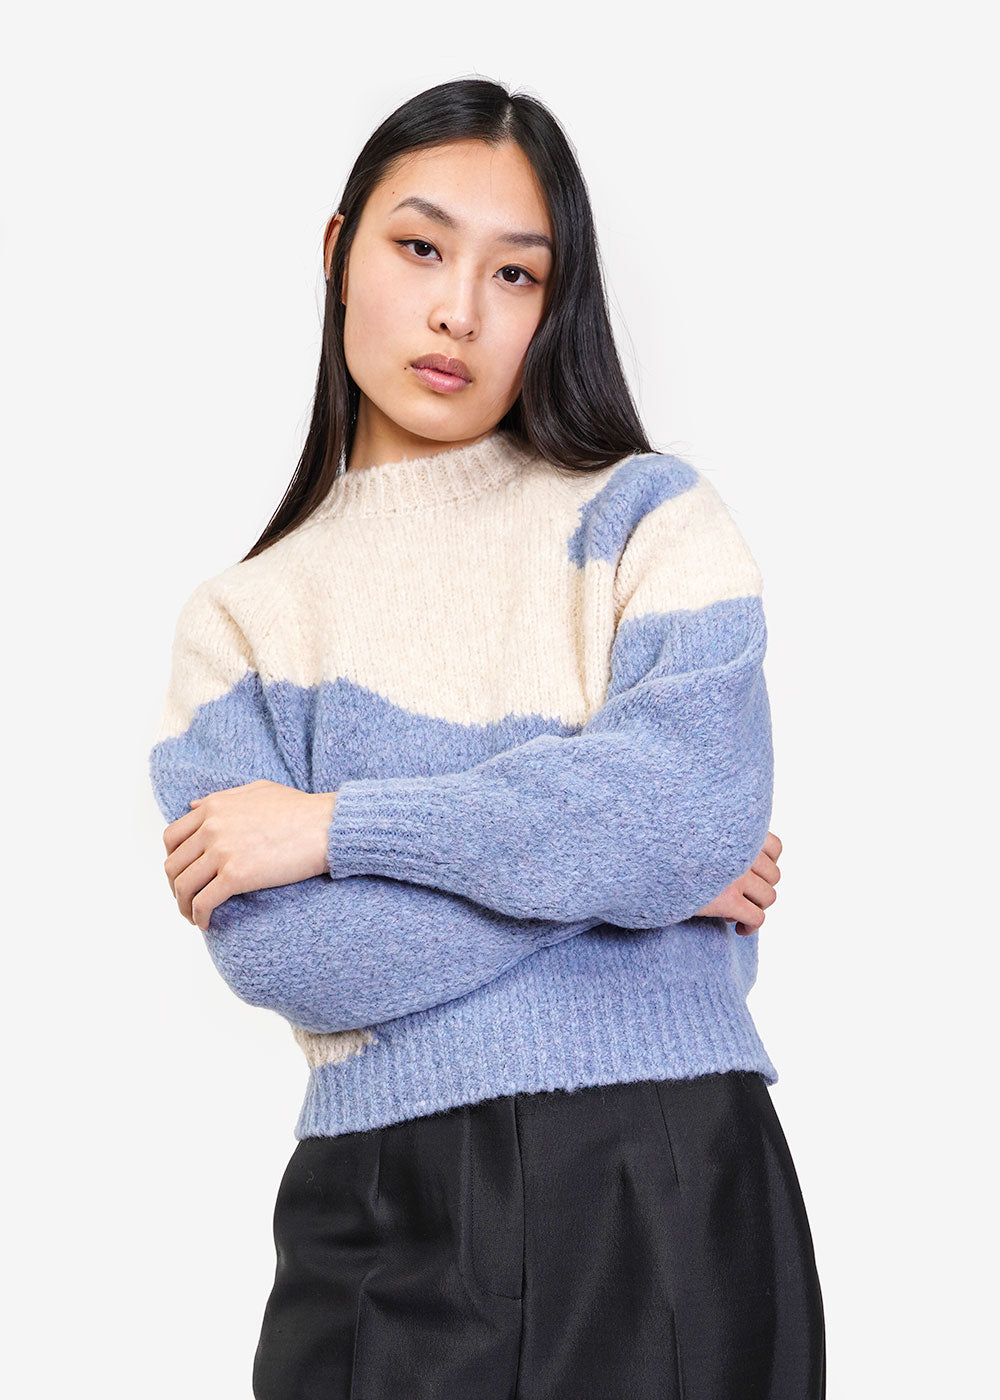 Paloma Wool Blue Yin Yang Sweater — Shop sustainable fashion and slow fashion at New Classics Studios